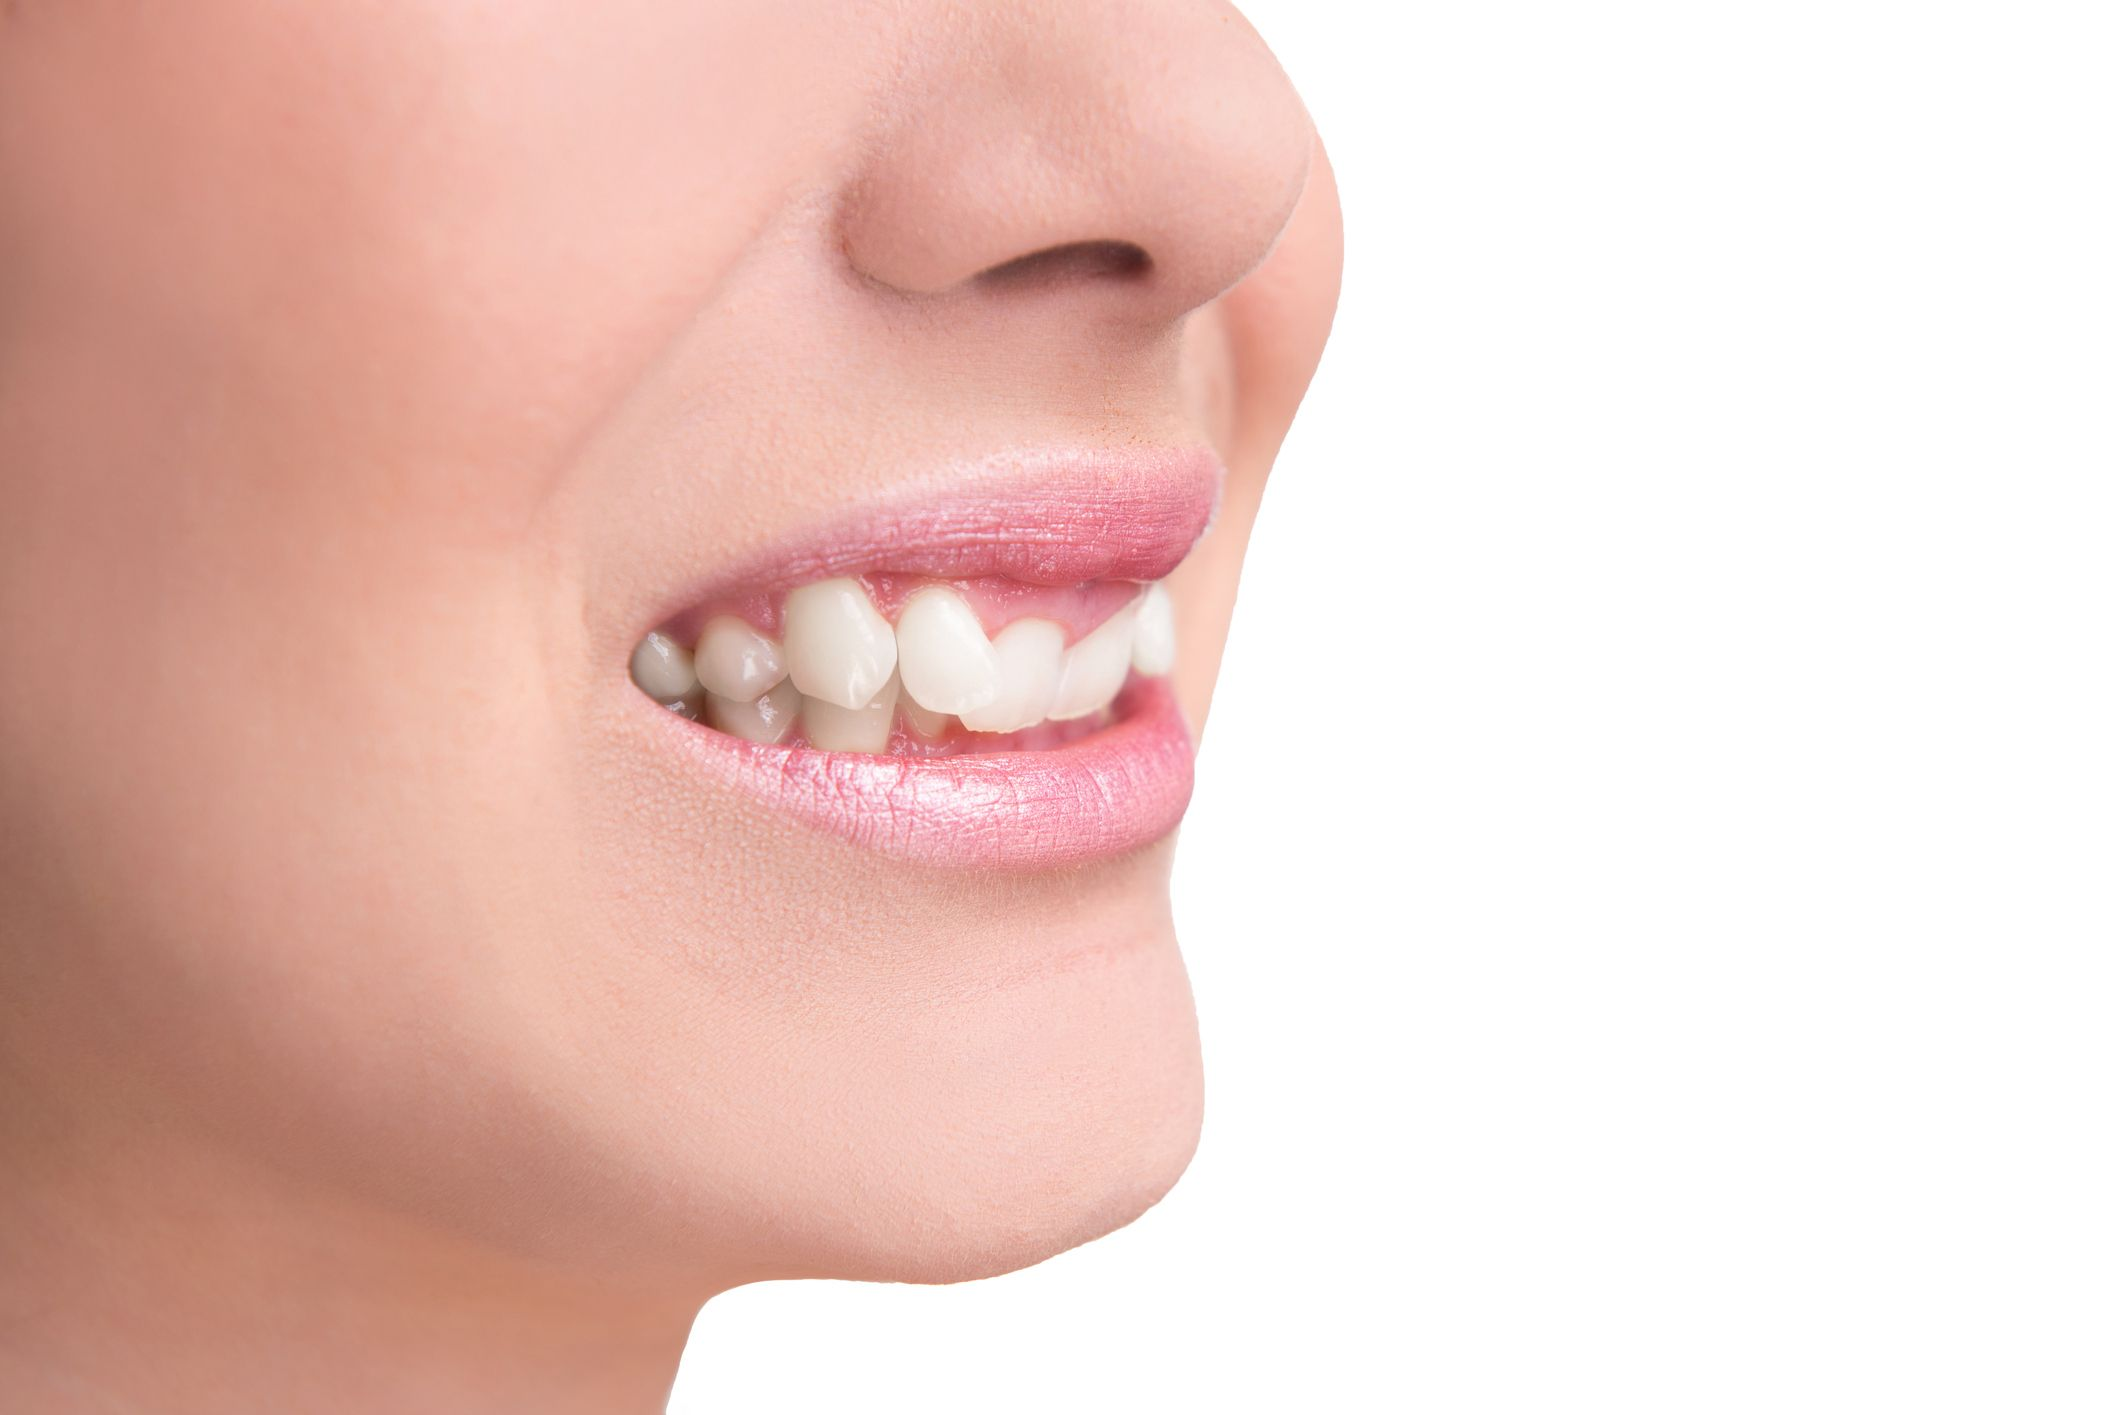 Photo of woman's smile with twisted tooth